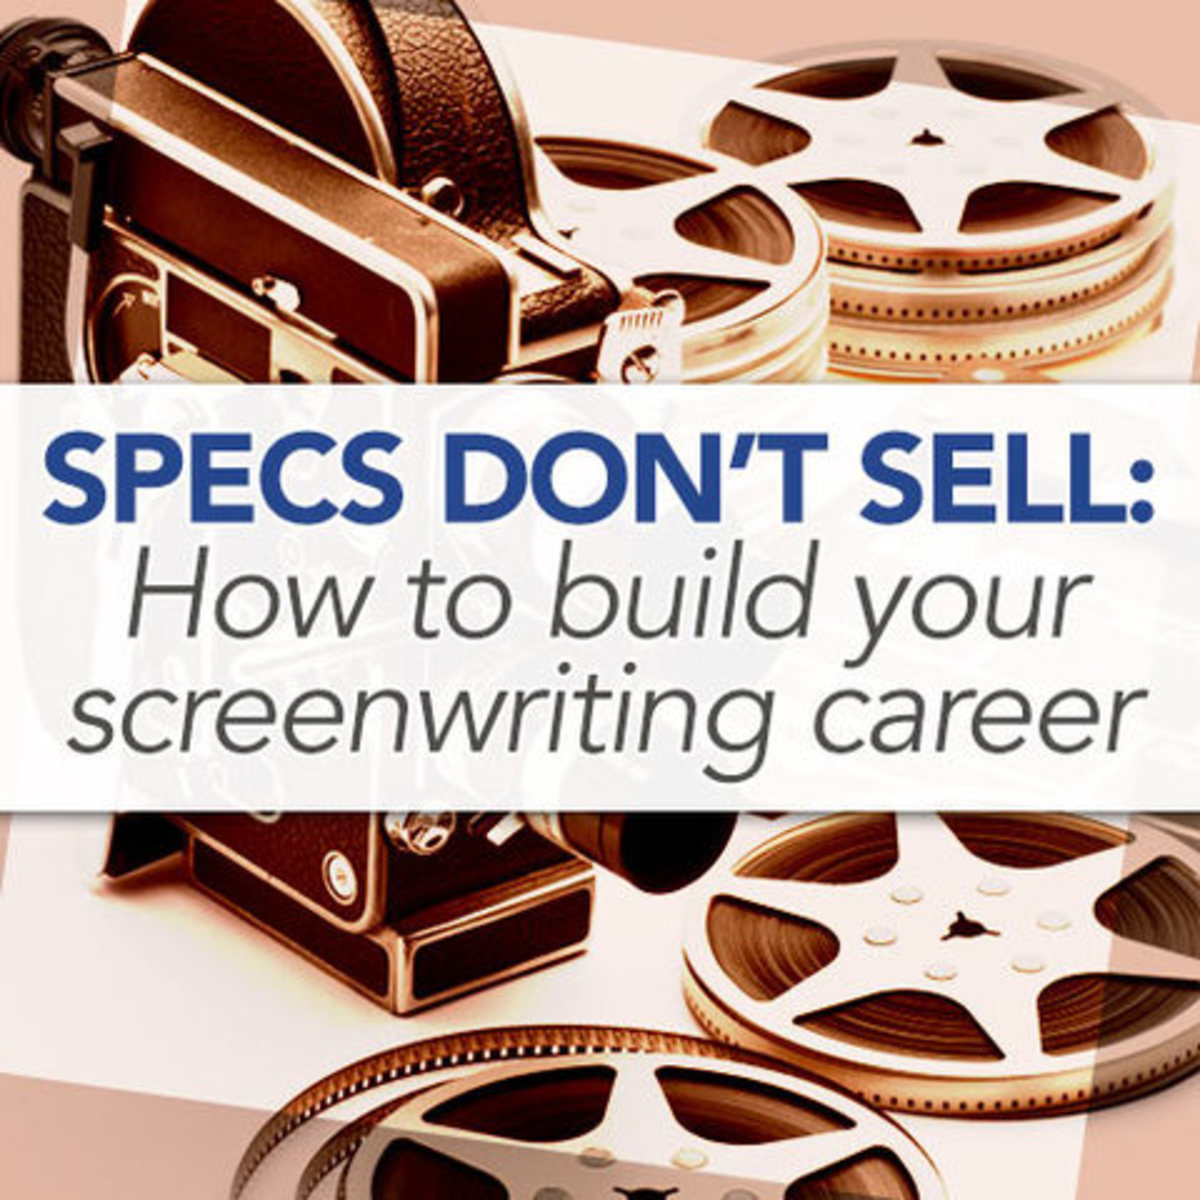 ws_specs dont sell-screenwriting-career-500_medium